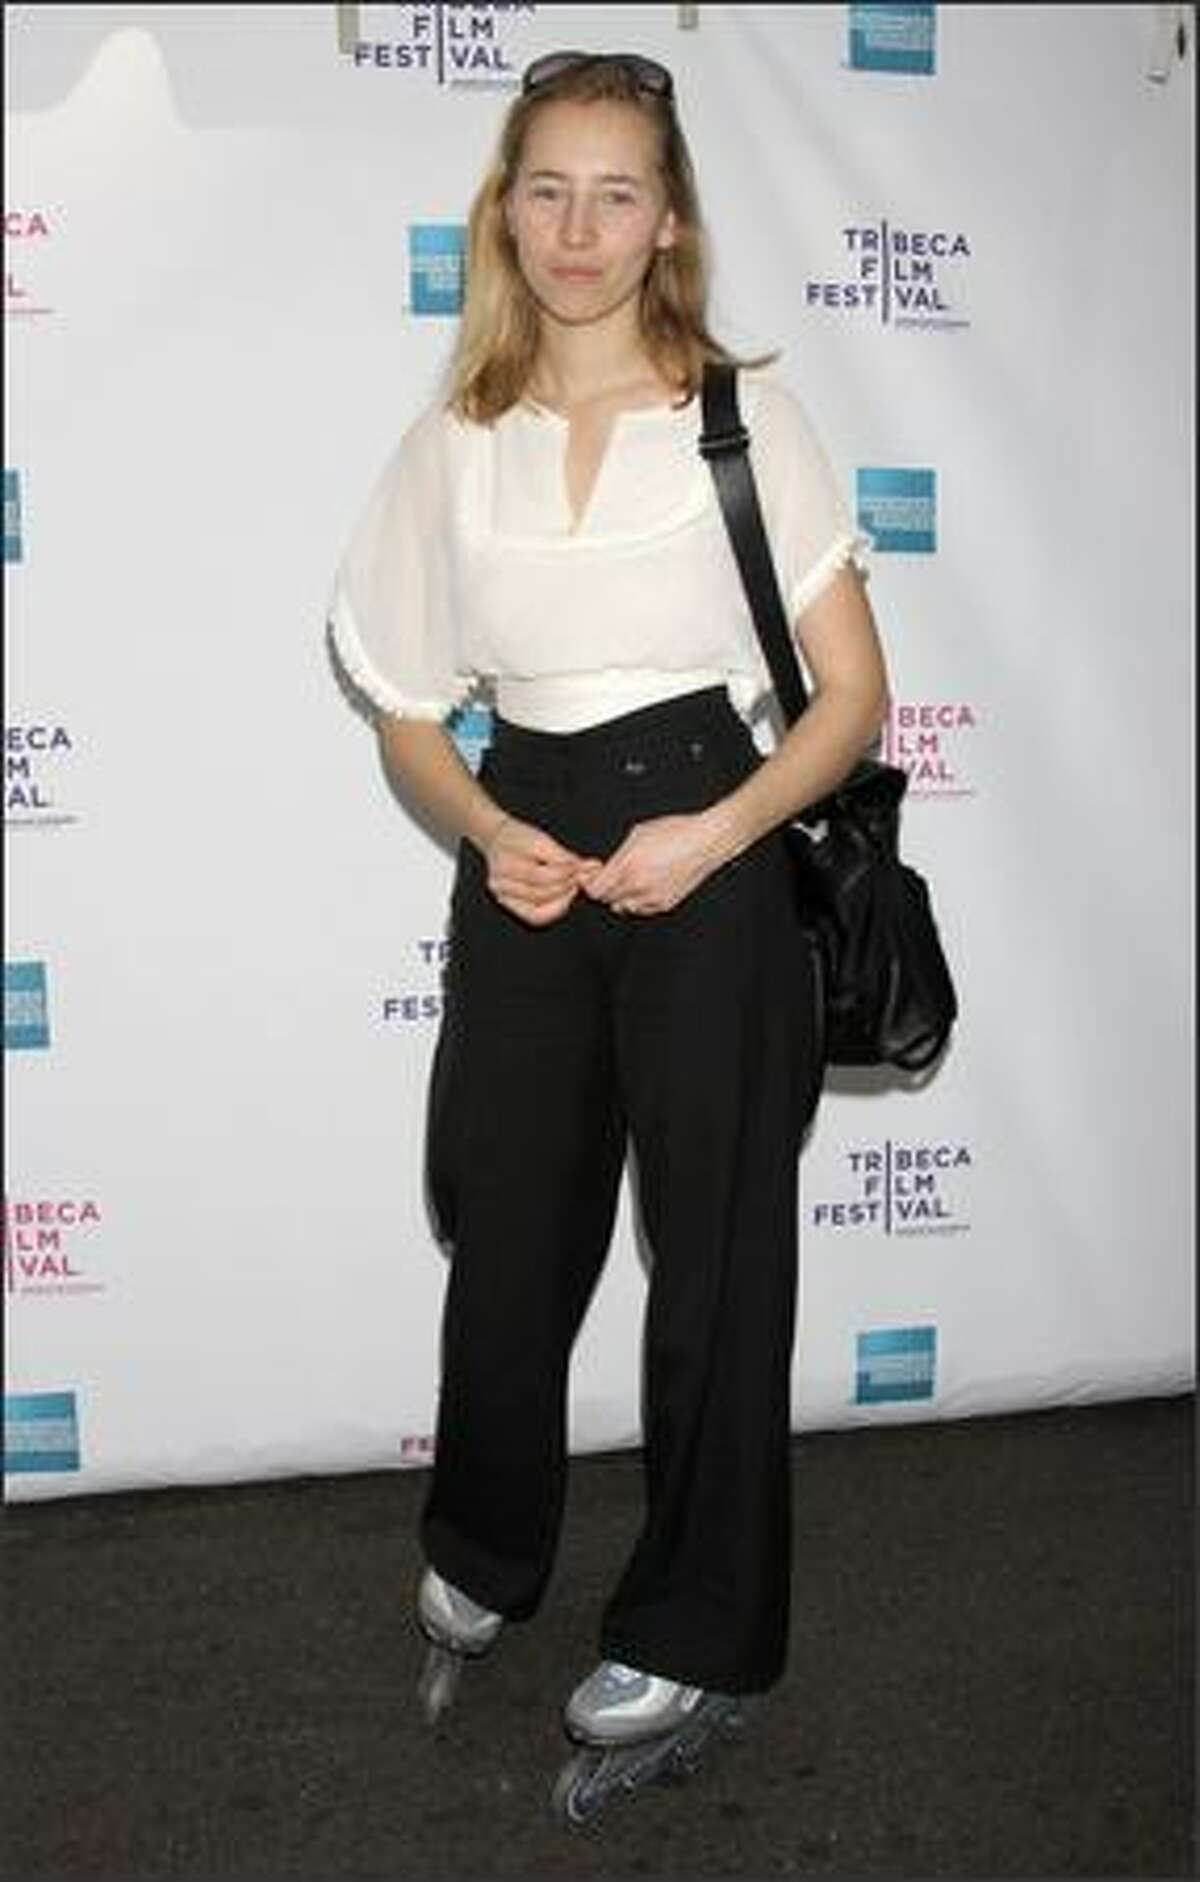 Director Isild le Besco attends the premiere of